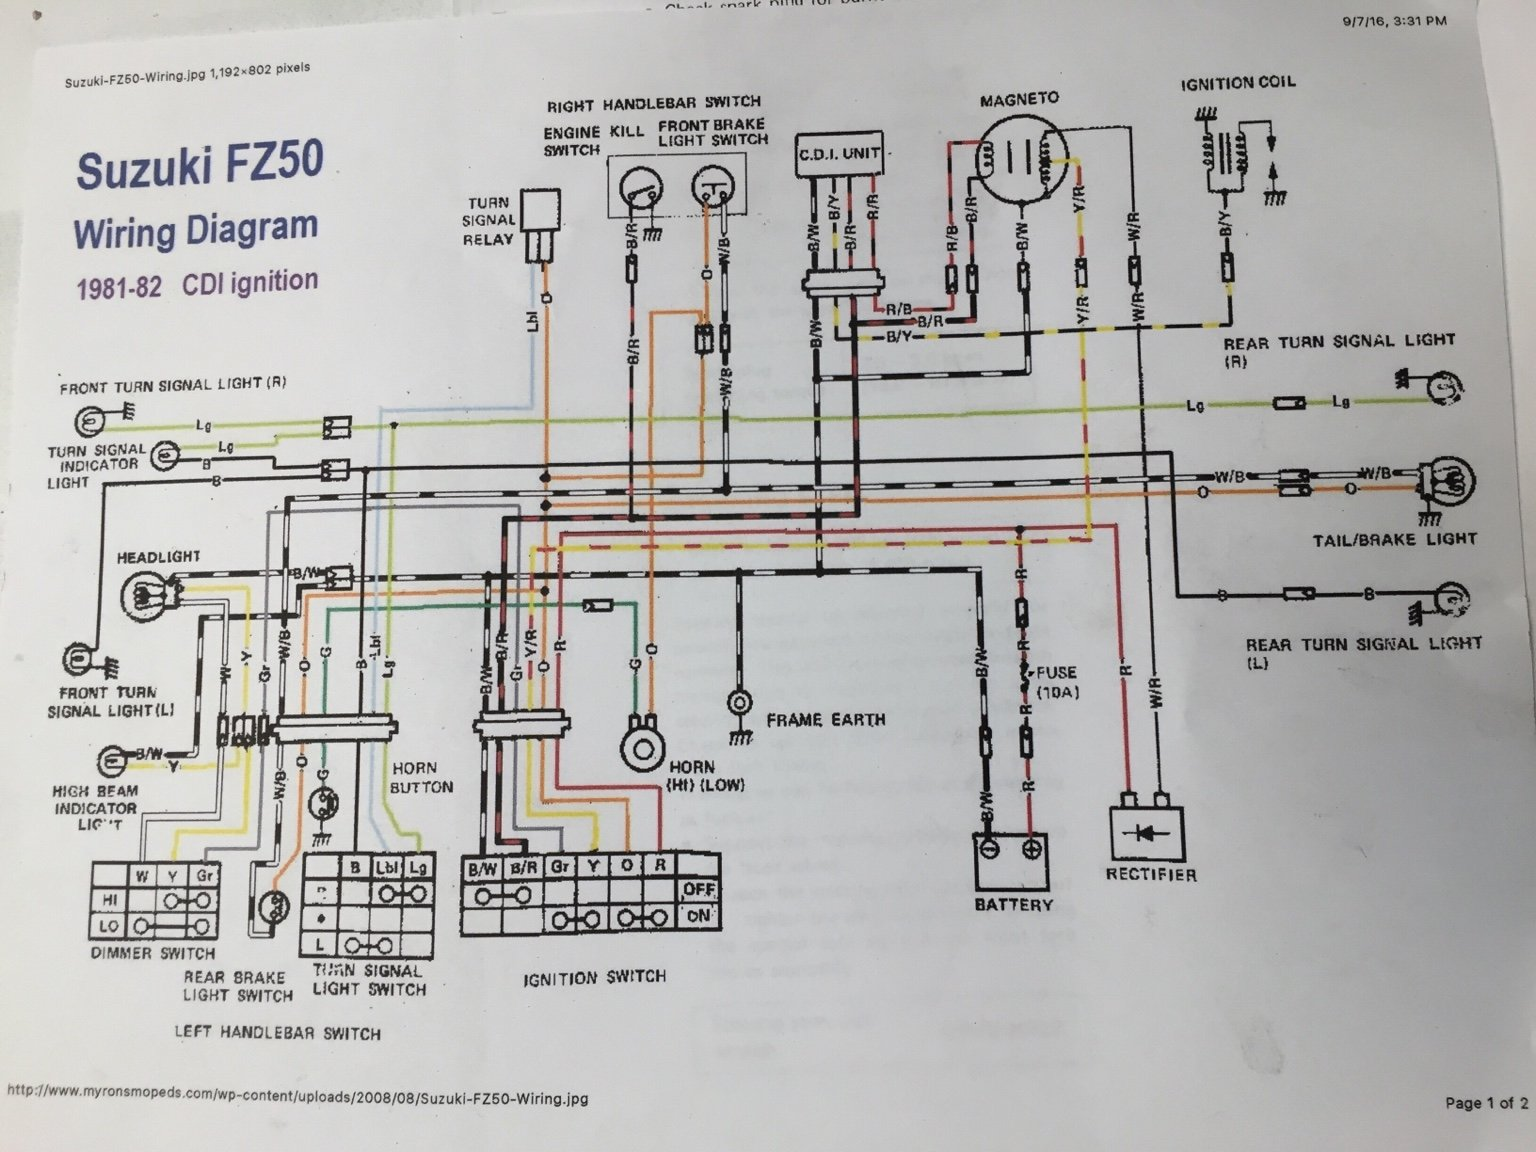 3f2c0d4537be33d95b5df9bfe3509332 suzuki fa50 wiring diagram suzuki wiring diagrams suzuki fa50 wiring diagram at gsmportal.co